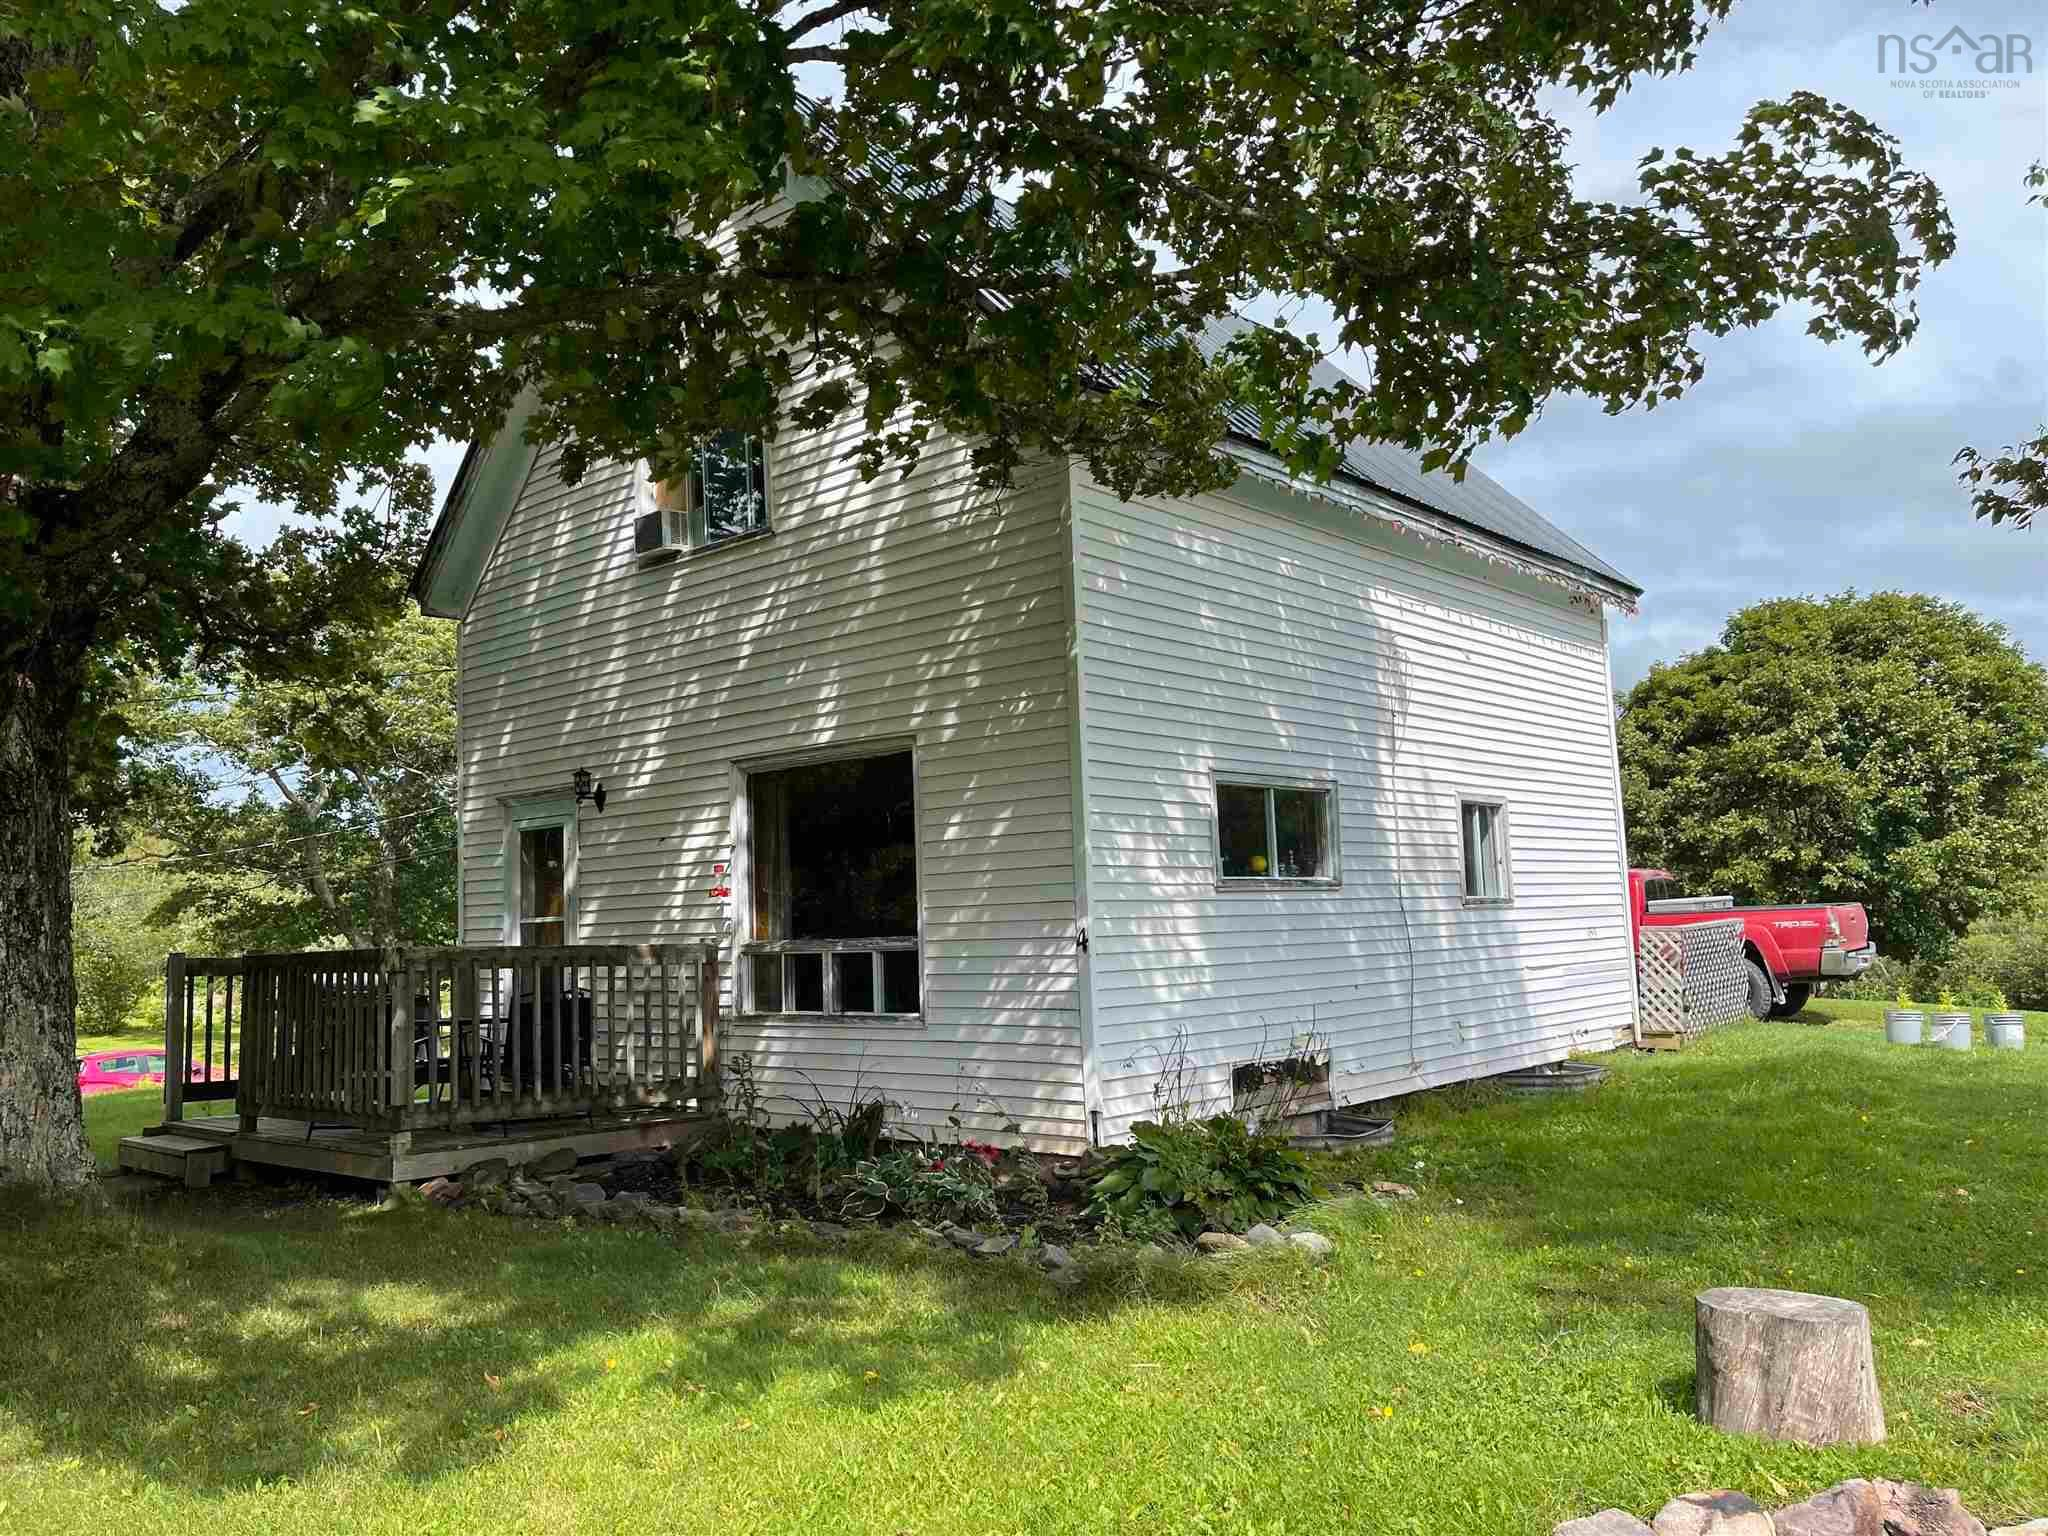 Main Photo: 4 Second Street in Eureka: 108-Rural Pictou County Residential for sale (Northern Region)  : MLS®# 202120639